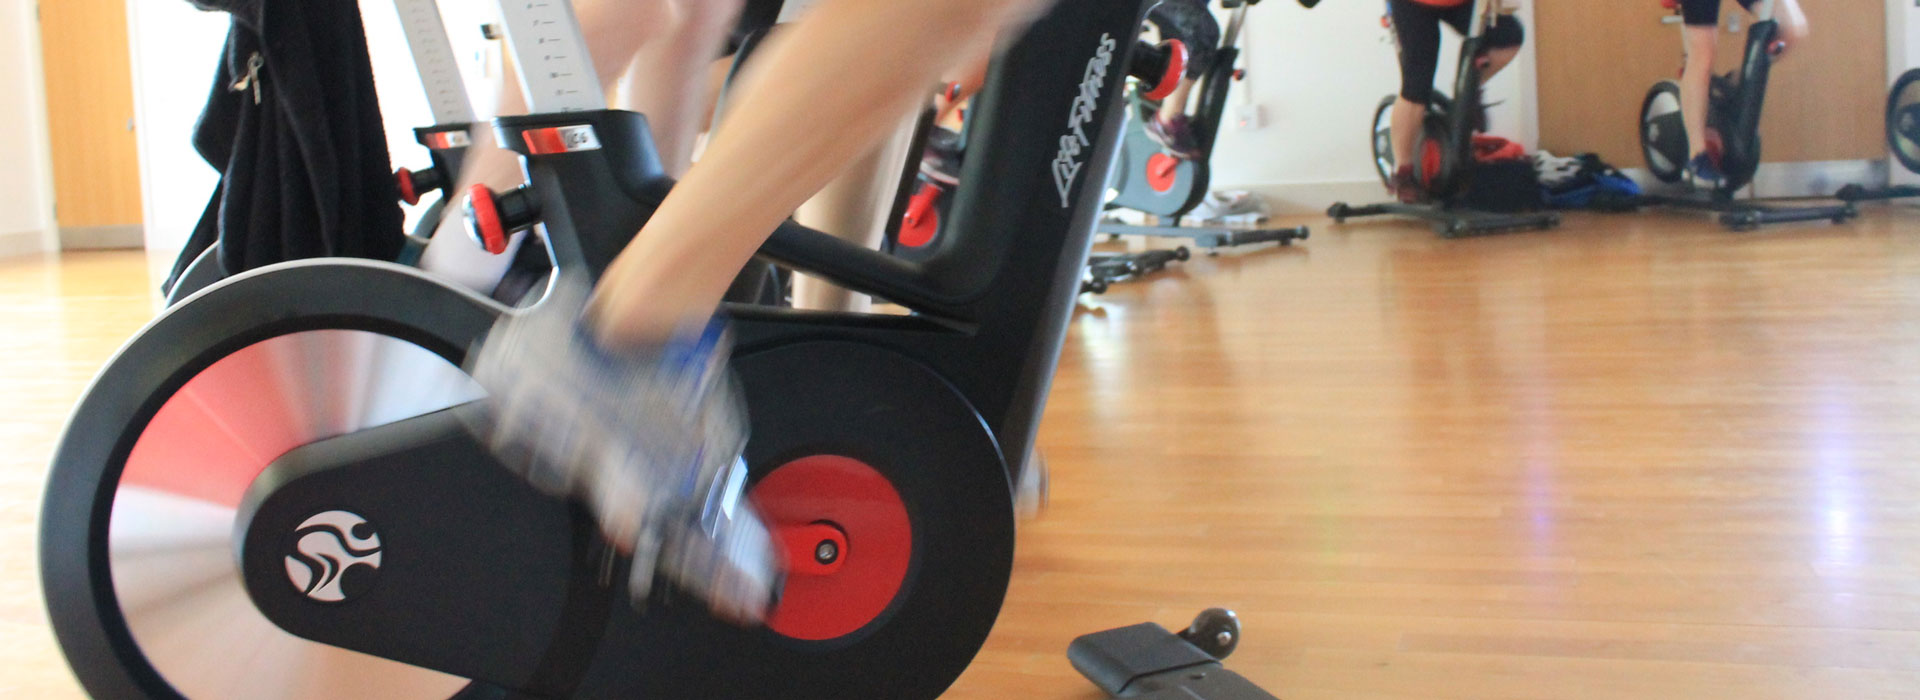 Spinning Classes available at Malvern Active